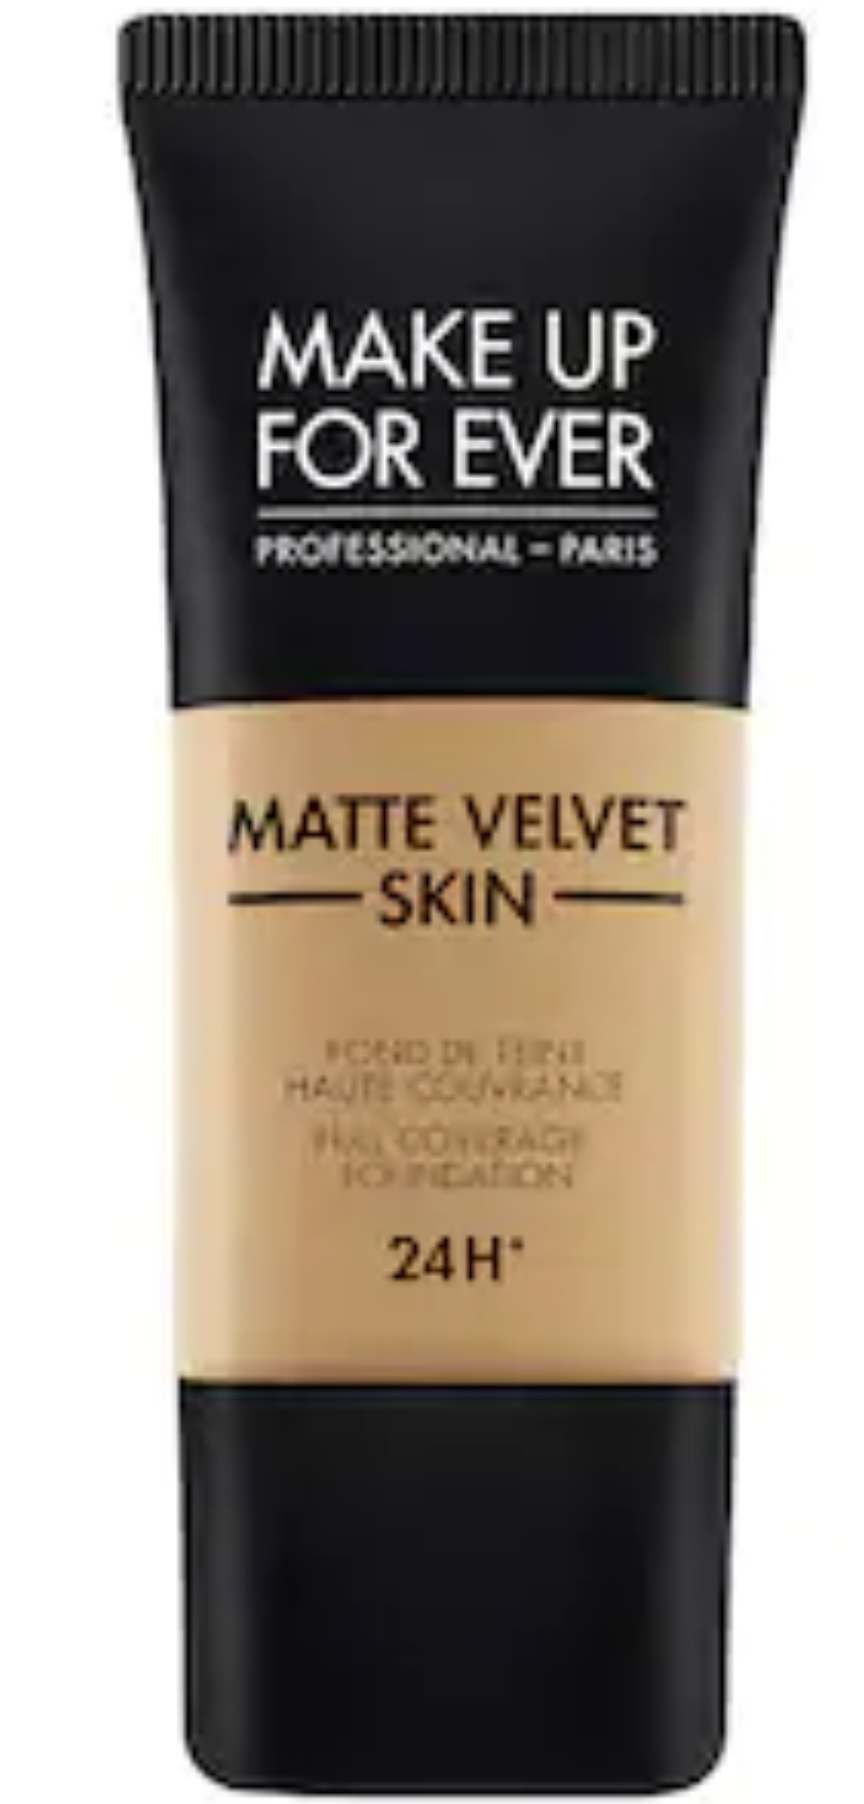 Make Up Forever Matte Velvet Full Coverage Foundation